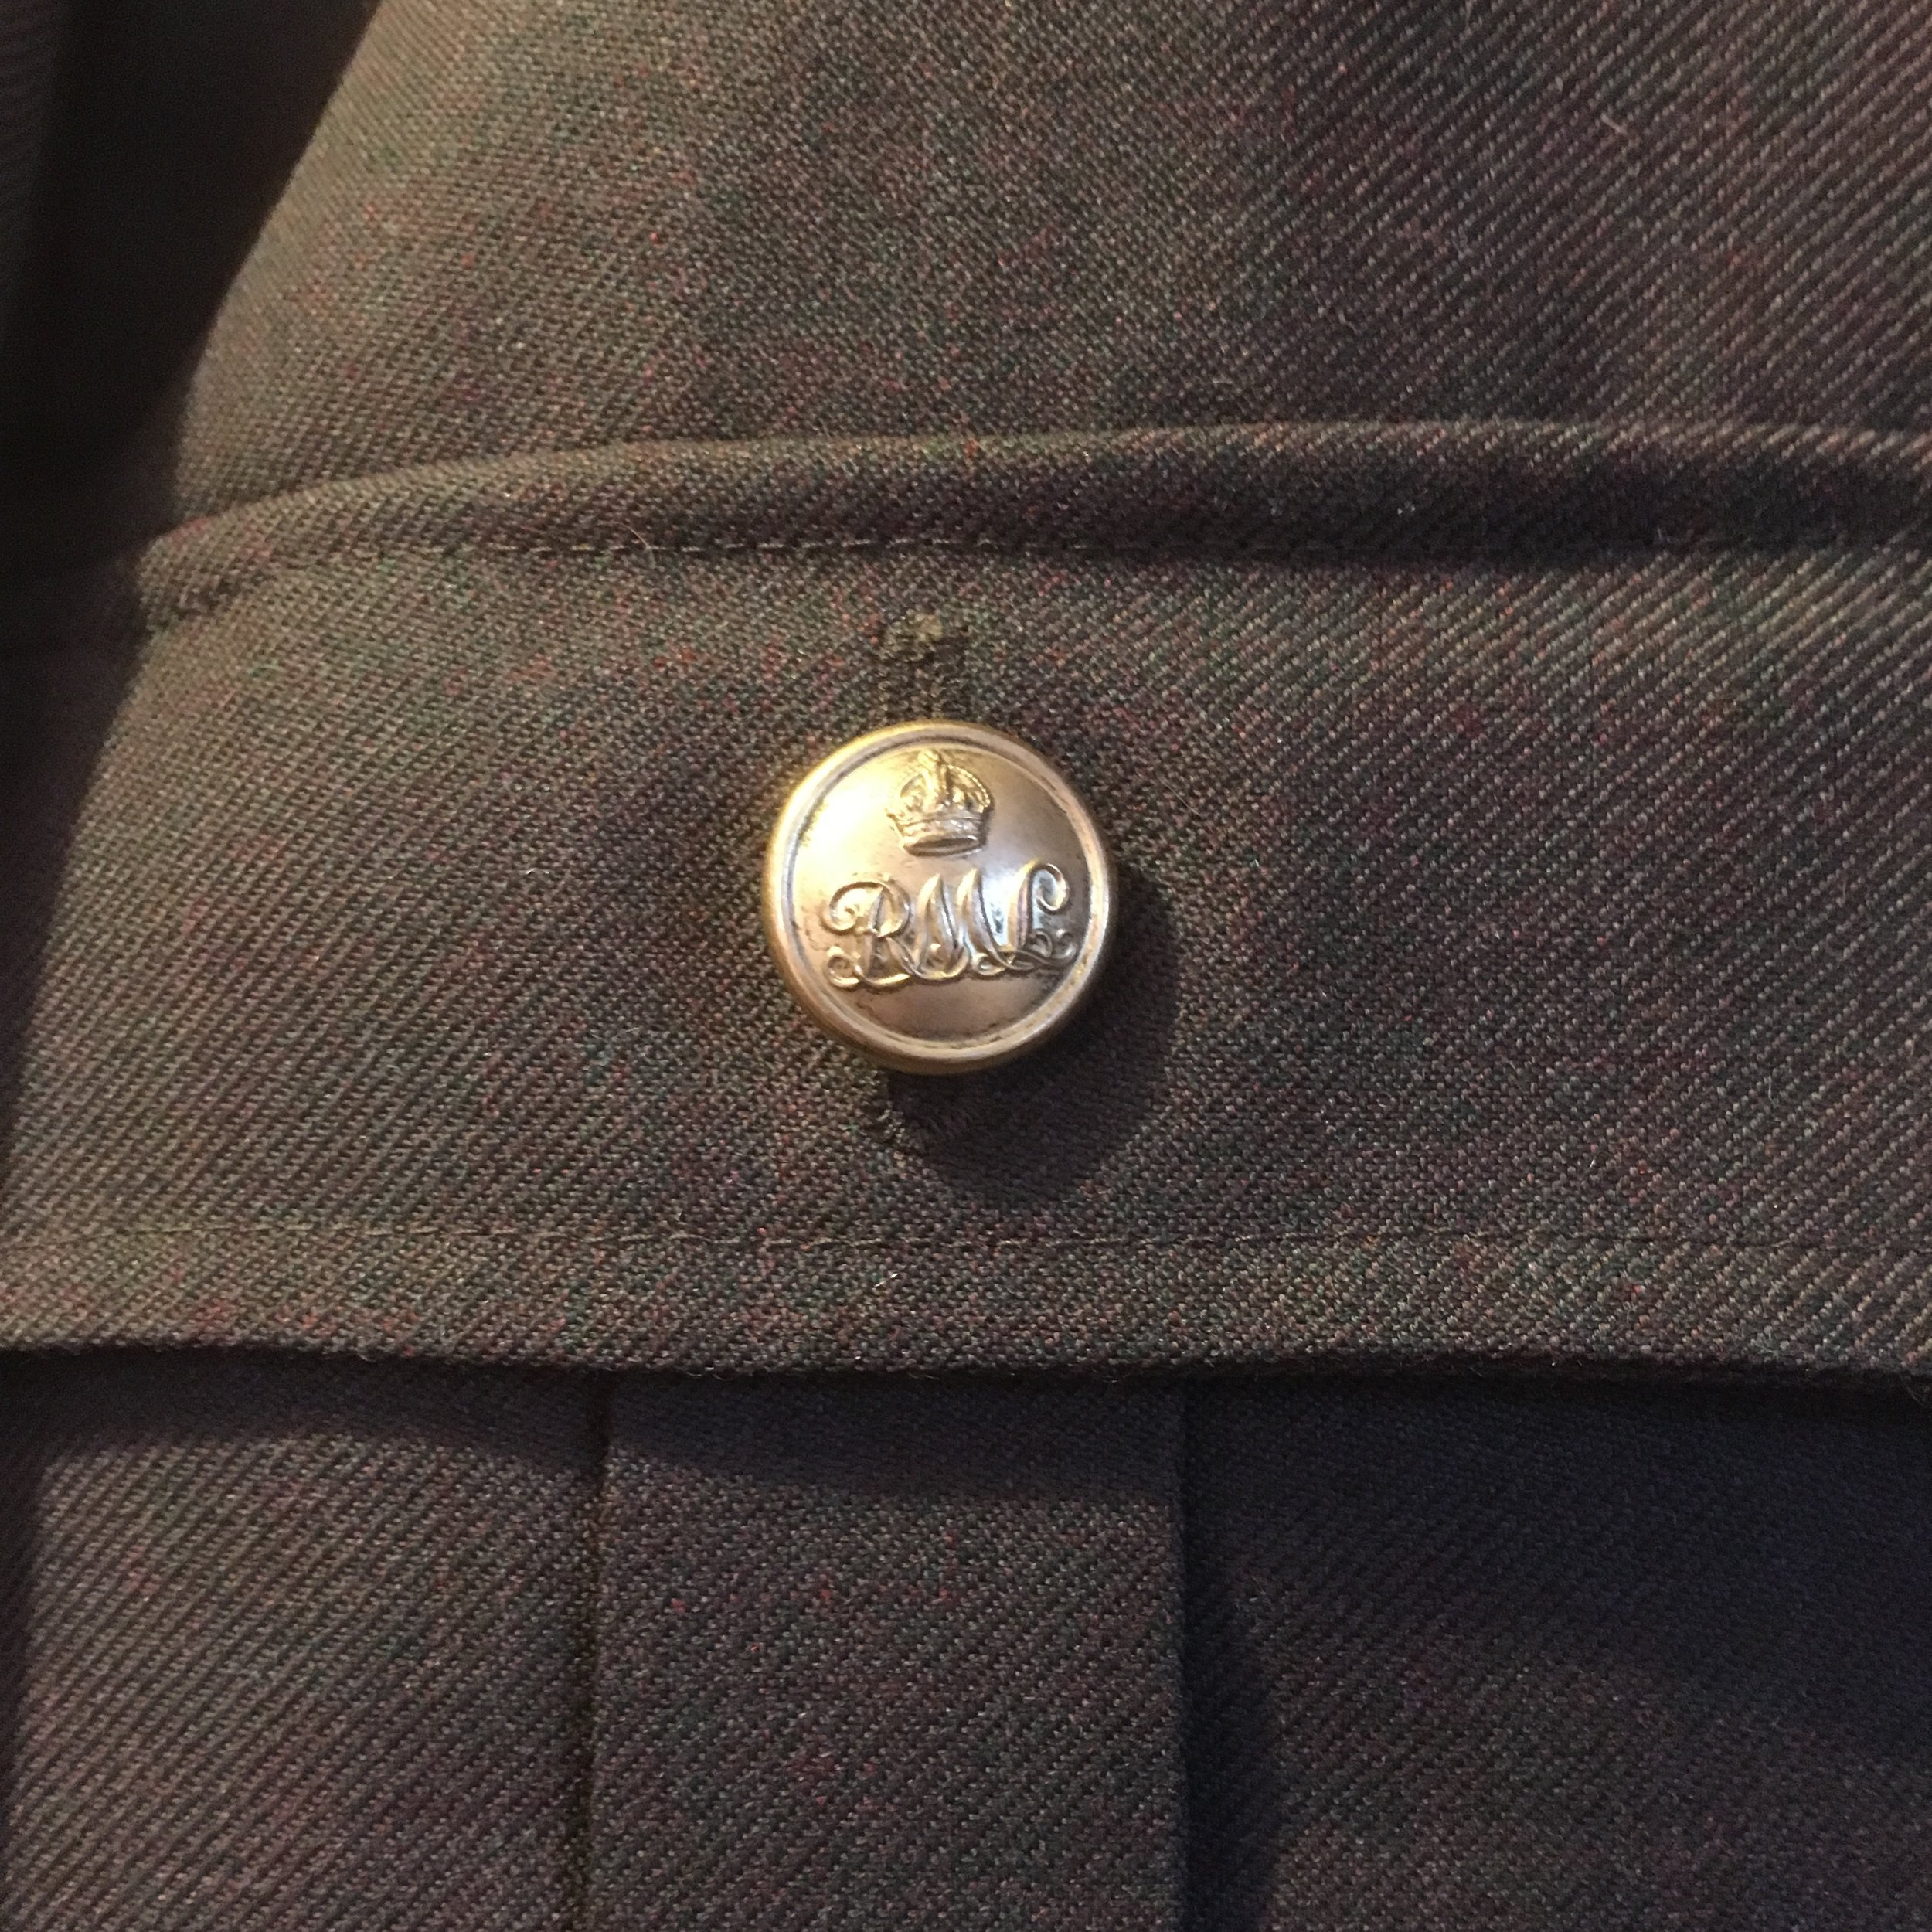 original buttons found for the Postal Rifles reconstruction costume.